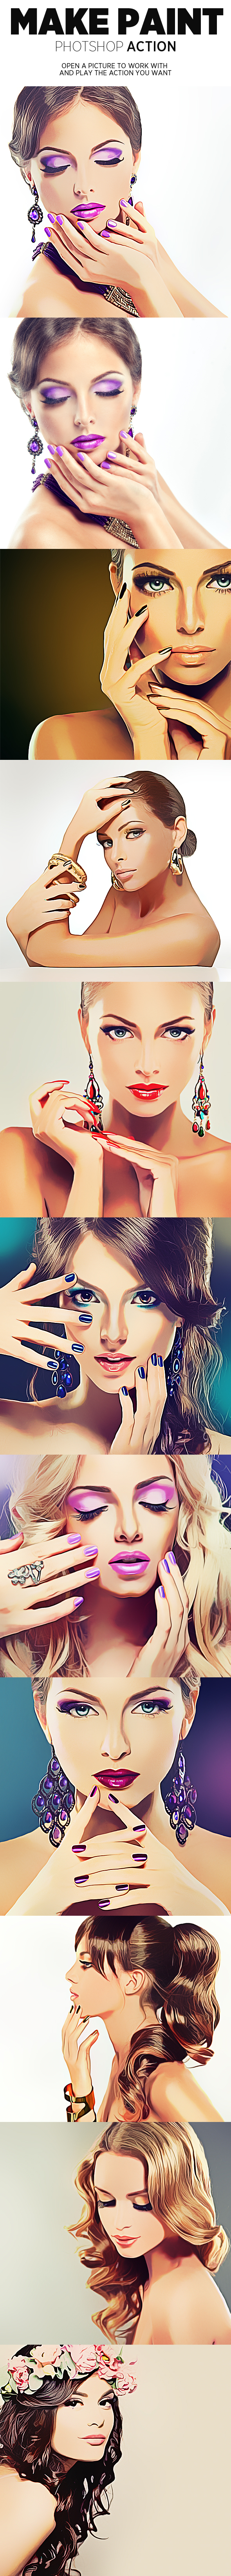 GraphicRiver Make Paint Photoshop Action 20816011